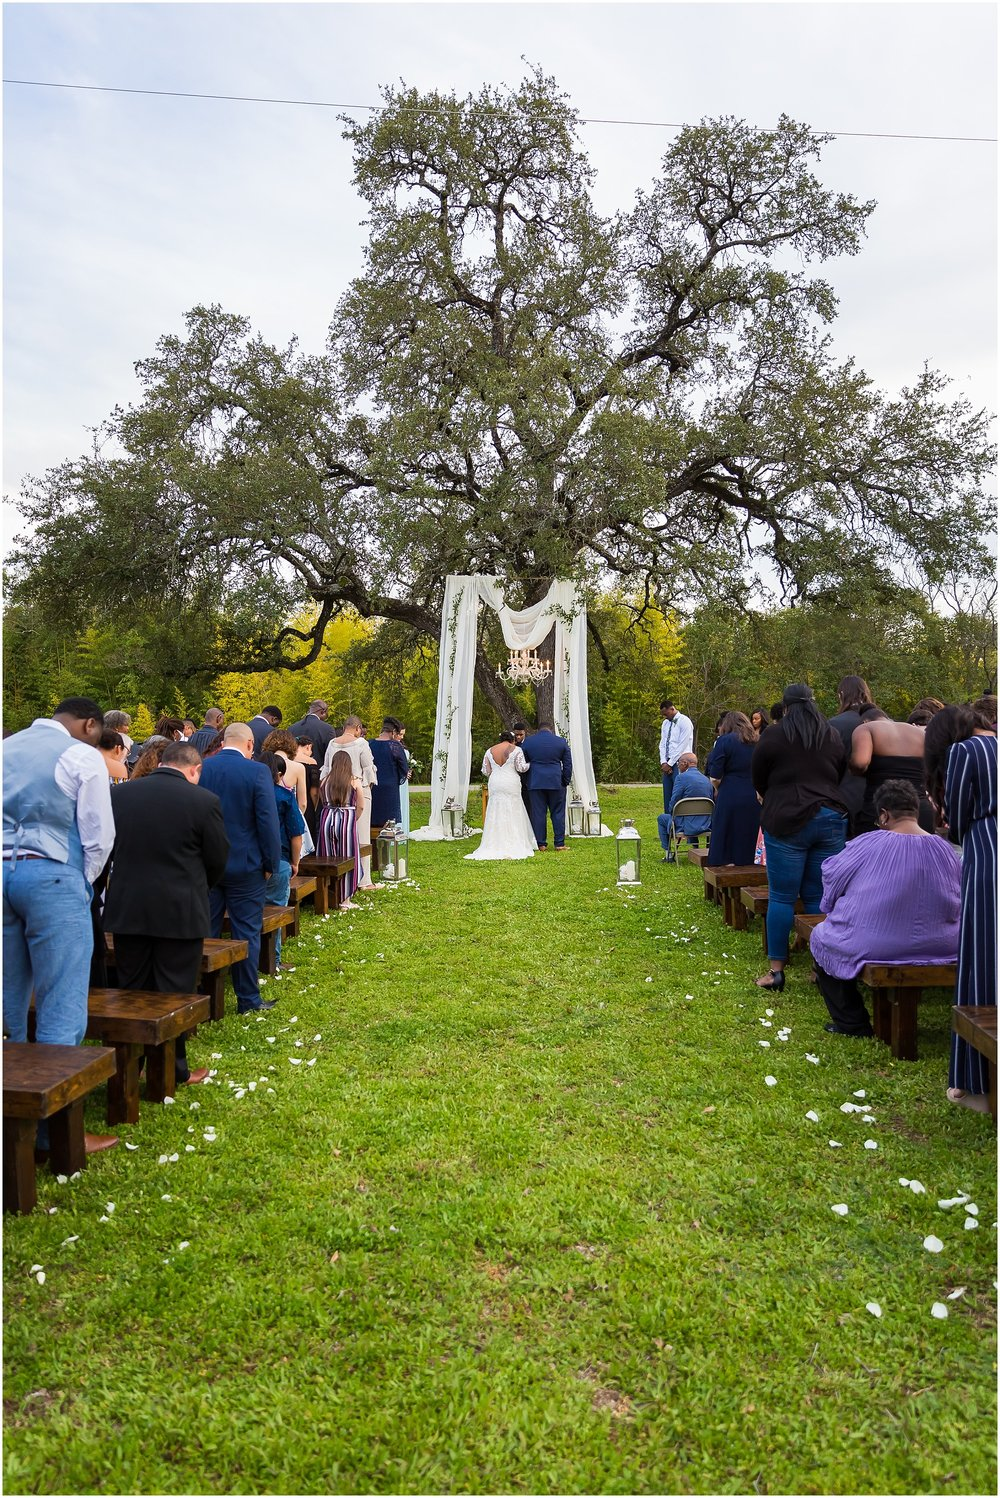 A large oak tree stands over a beautiful outdoor wedding ceremony in Cameron Park in Waco, Texas - Jason & Melaina Photography - www.jasonandmelaina.com